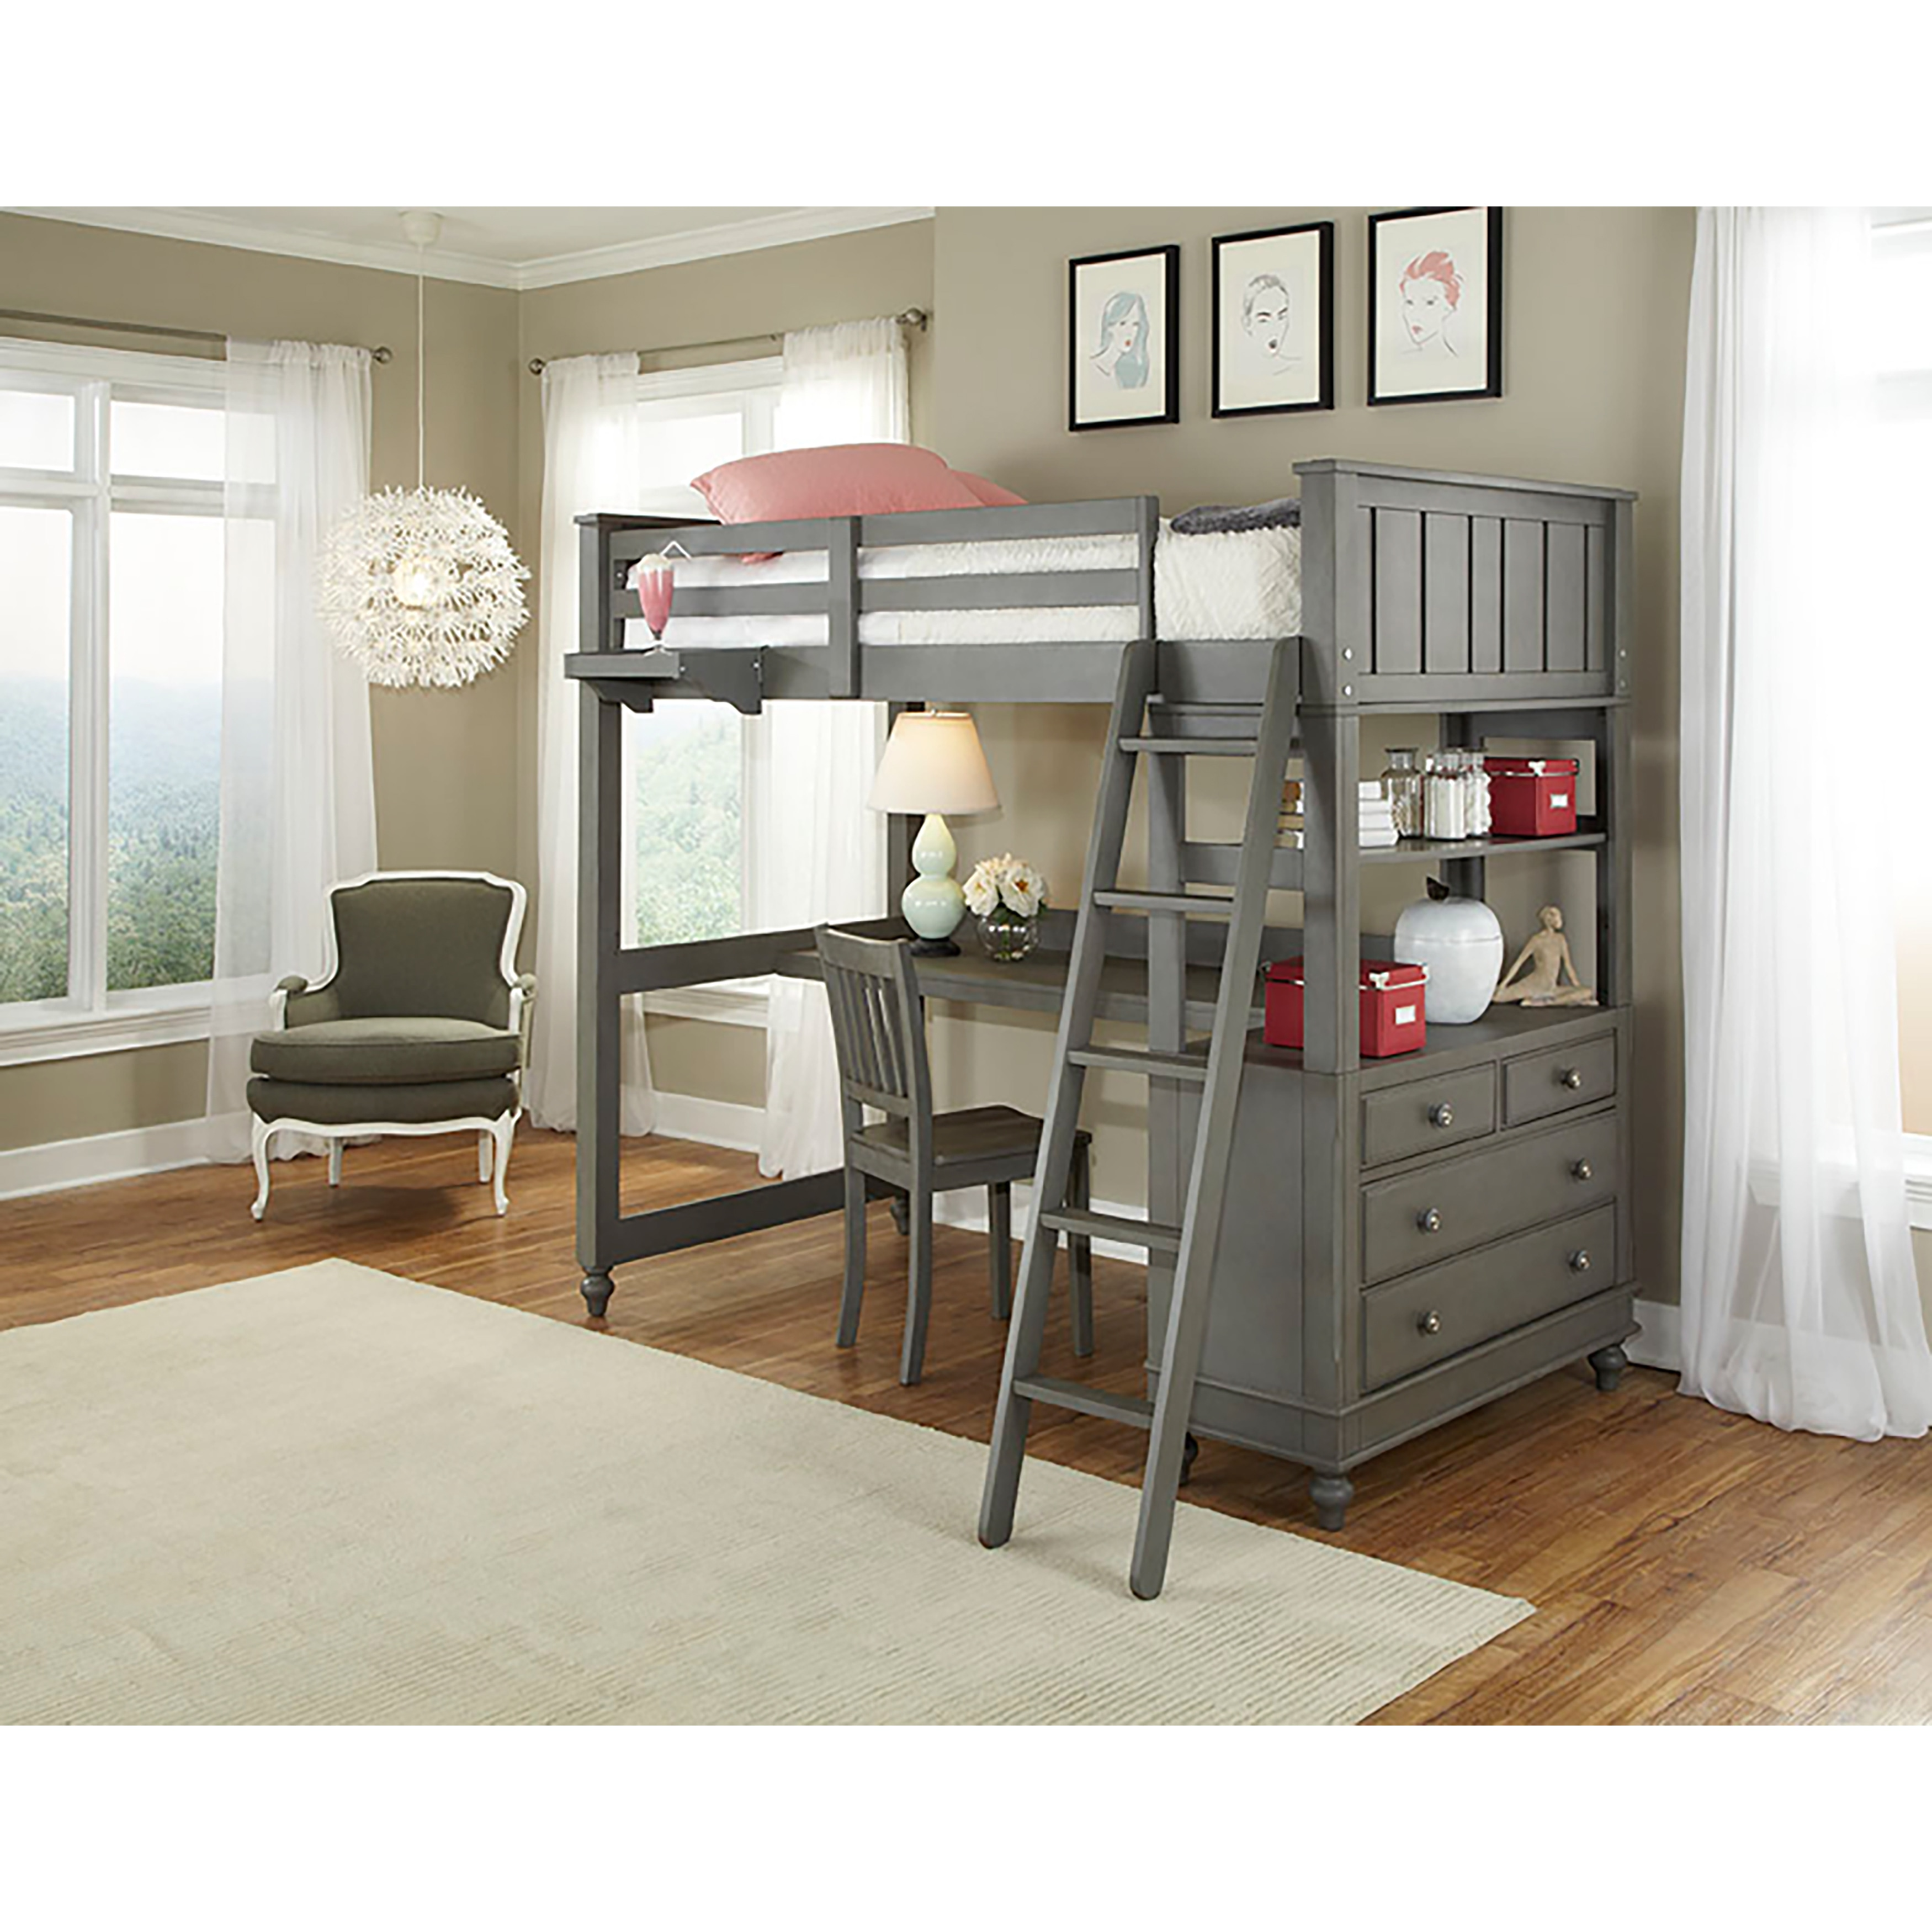 Twin Loft With Desk By Hilale Kids